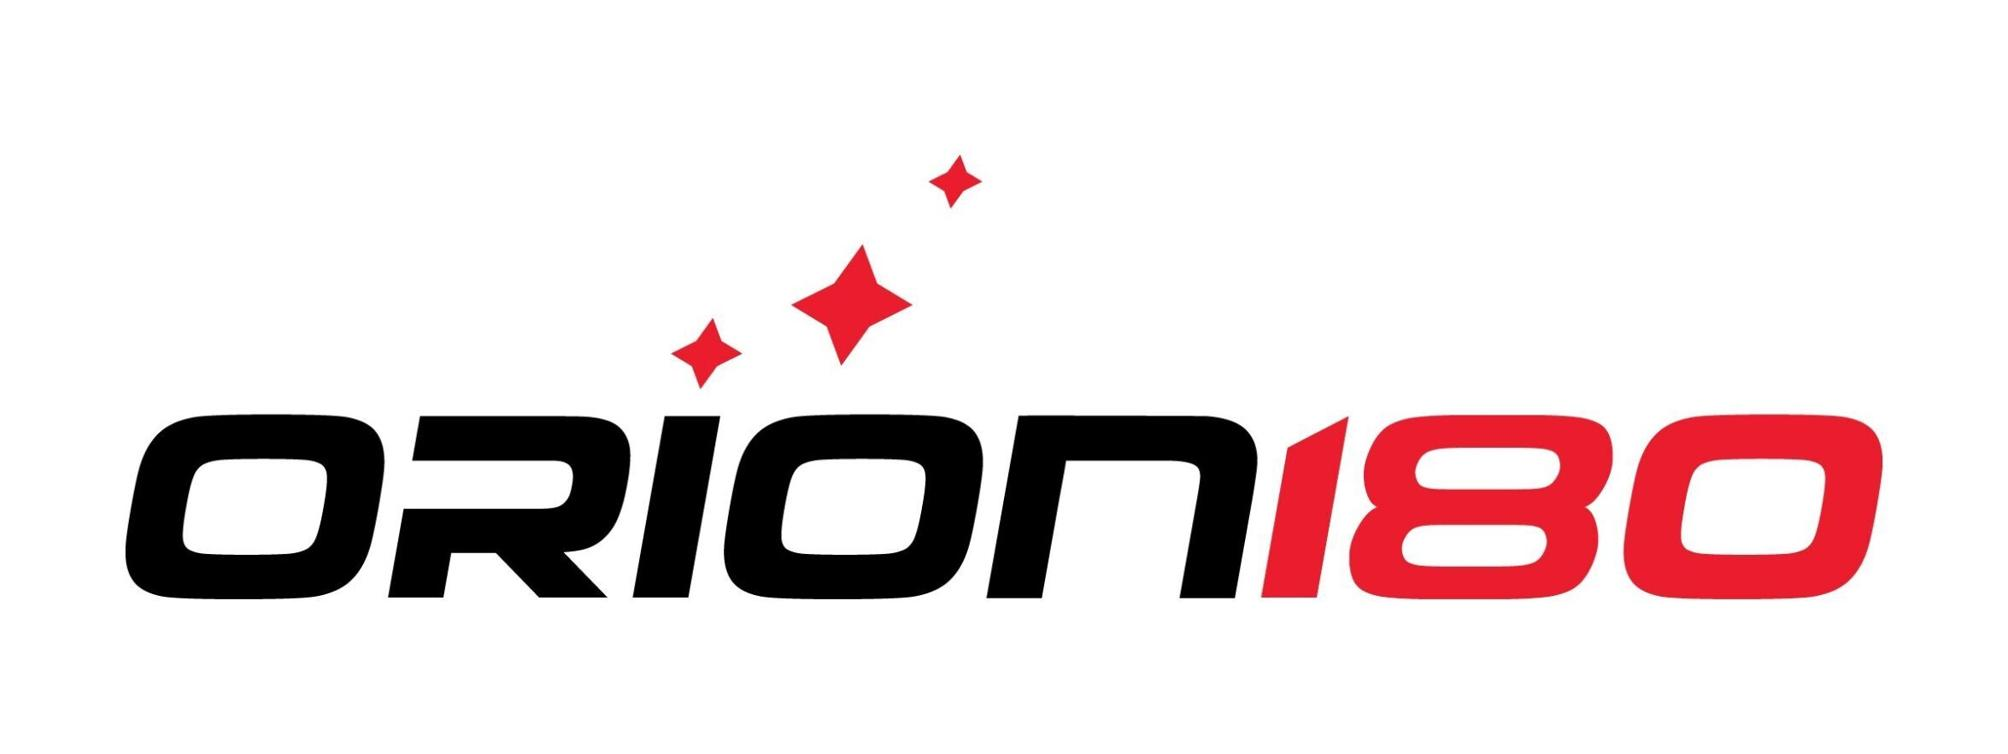 Home Insurance Provider Orion180 Launches In Tennessee